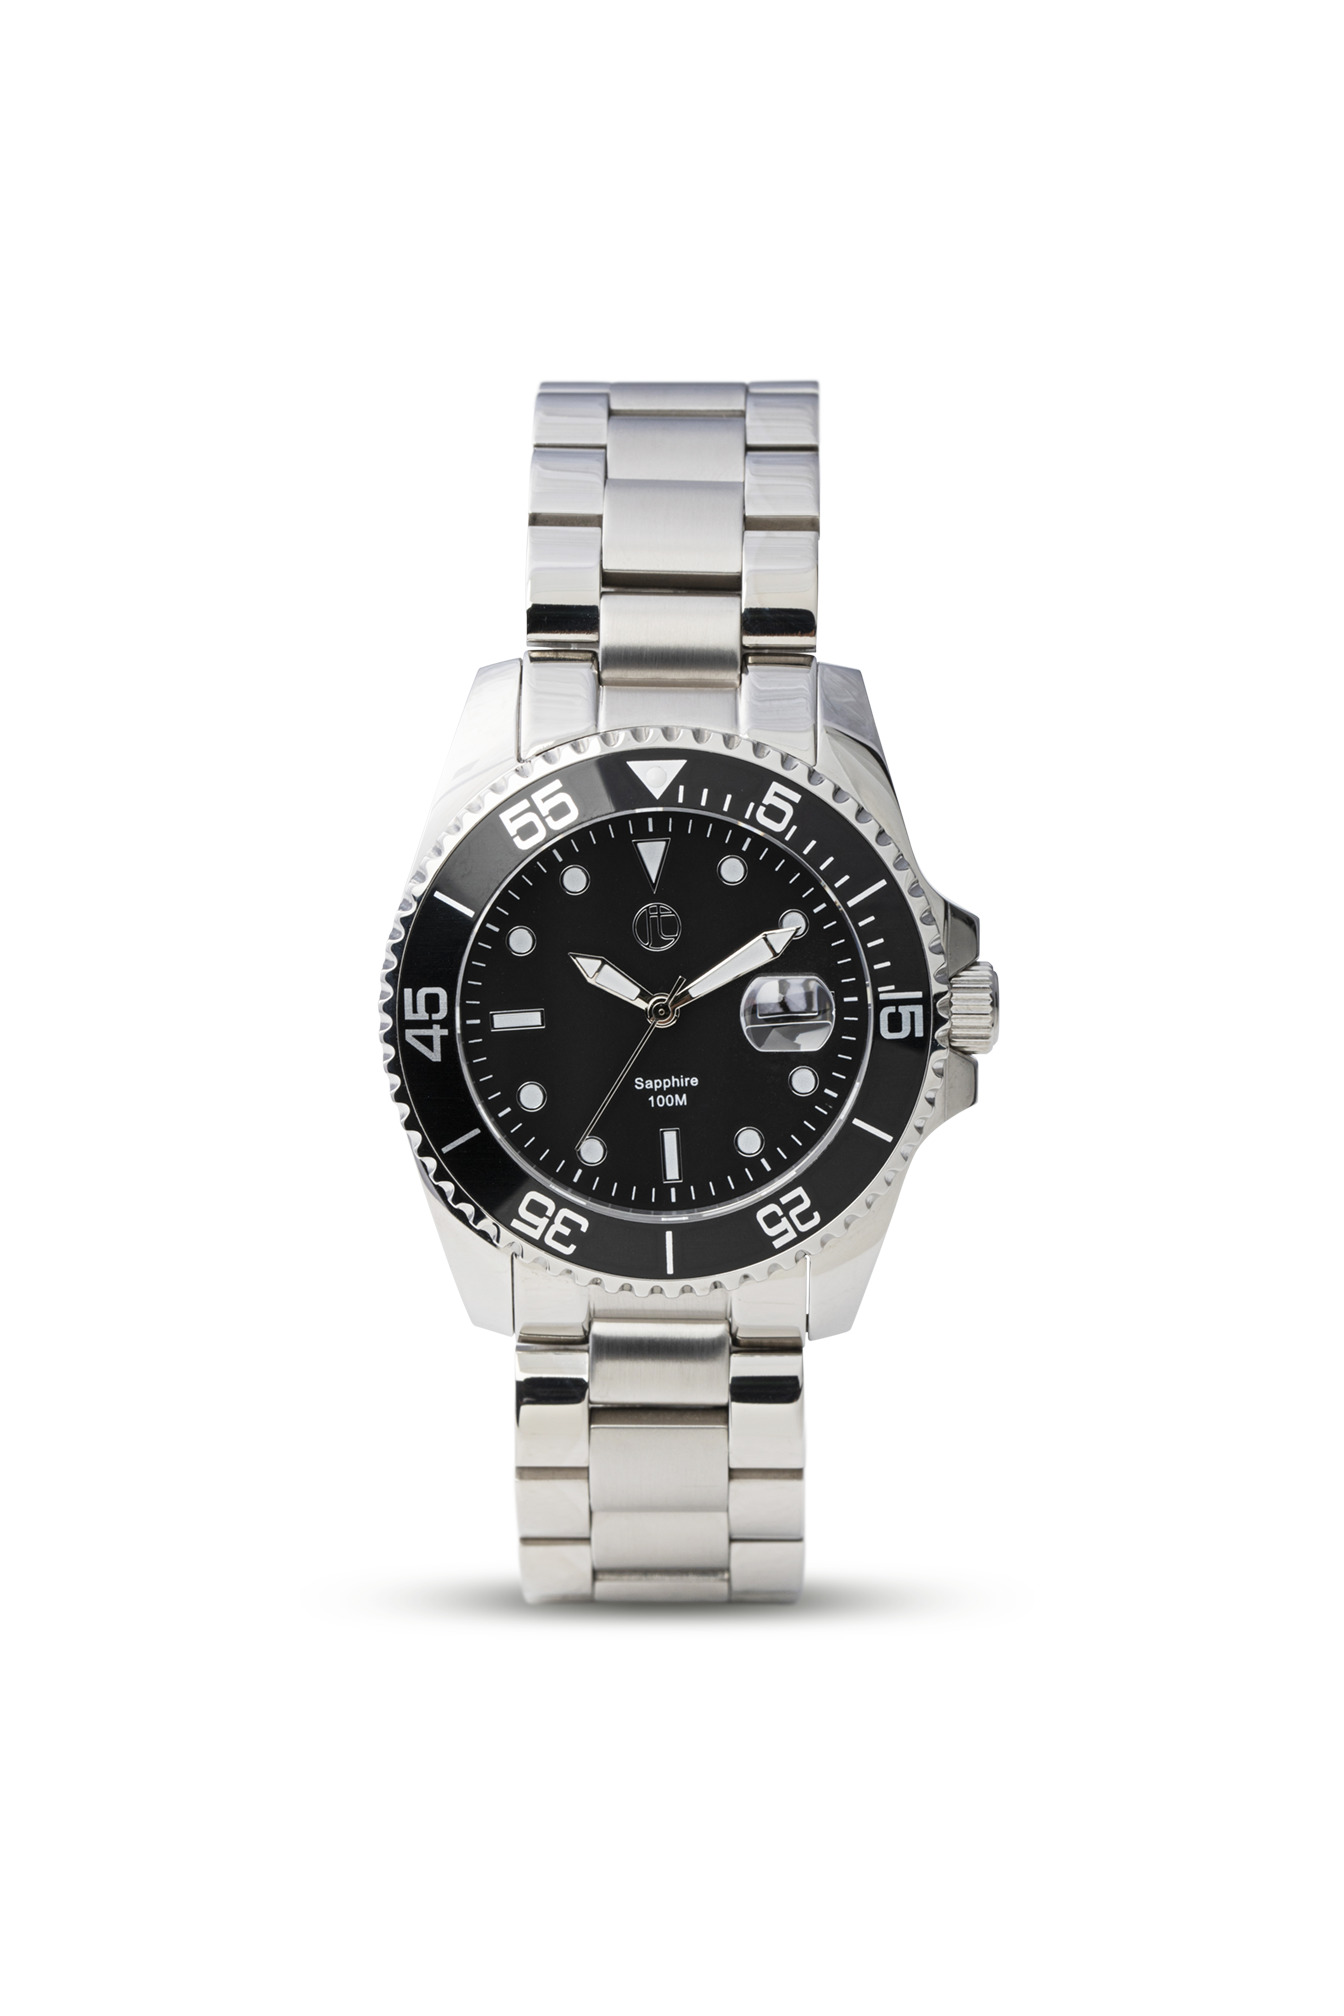 Image of Jeweltime ur - 3019-A